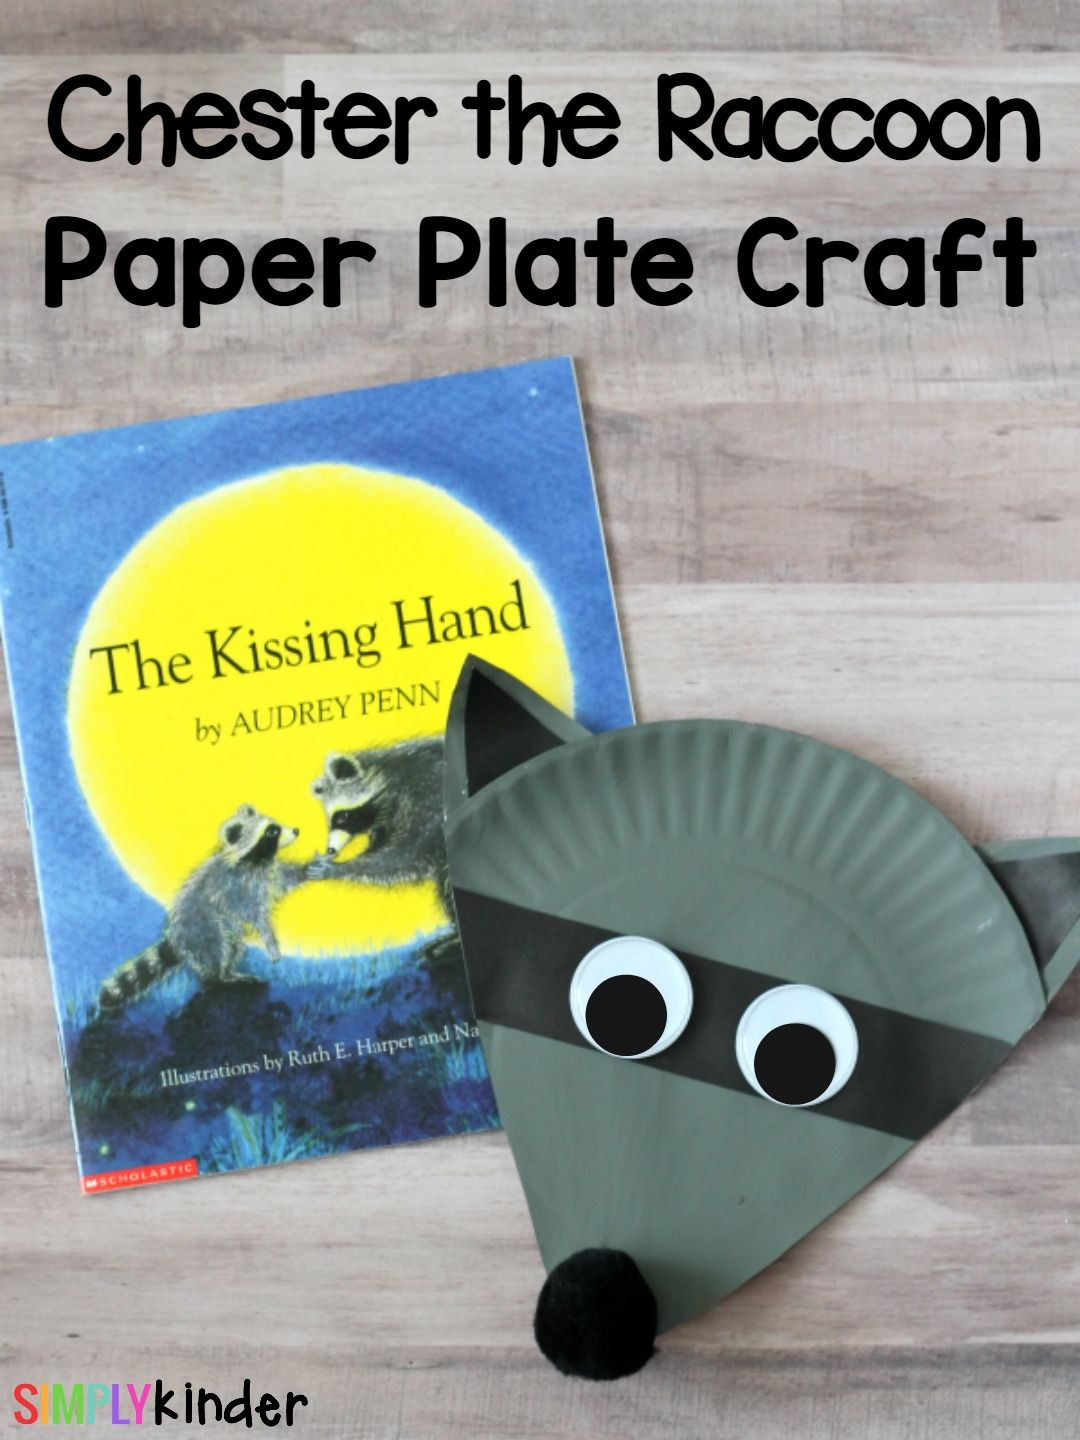 Chester the Raccoon Paper Plate Craft | Manualidades de niños ...